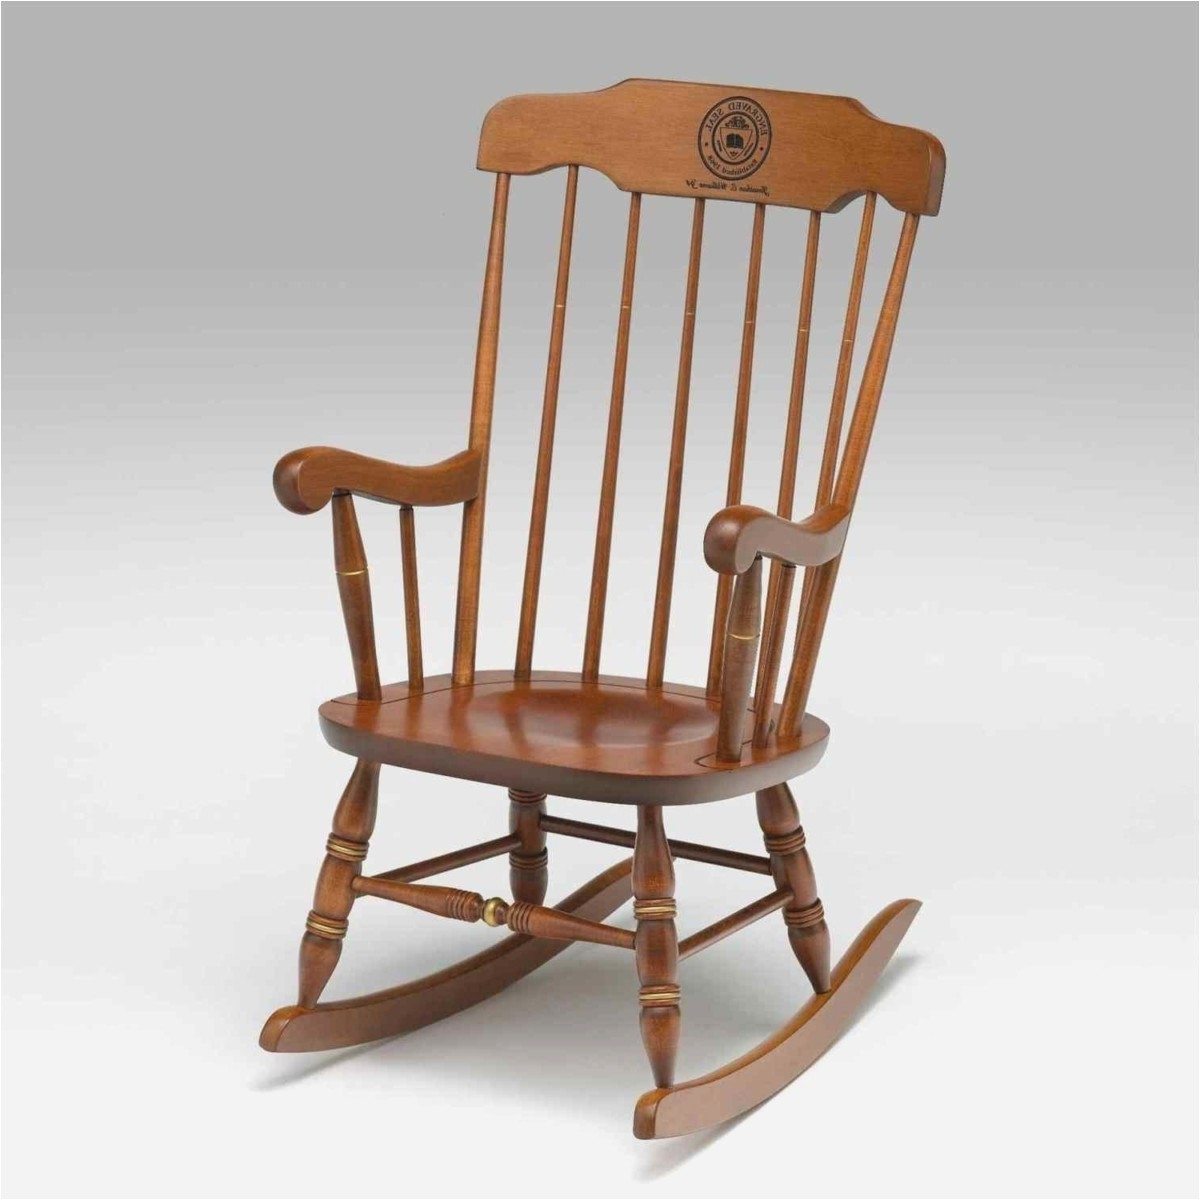 Rocking Chairs For Adults Regarding Well Liked Wooden Rocking Chair Johannesburg Archives – Chair Furniture (View 12 of 20)